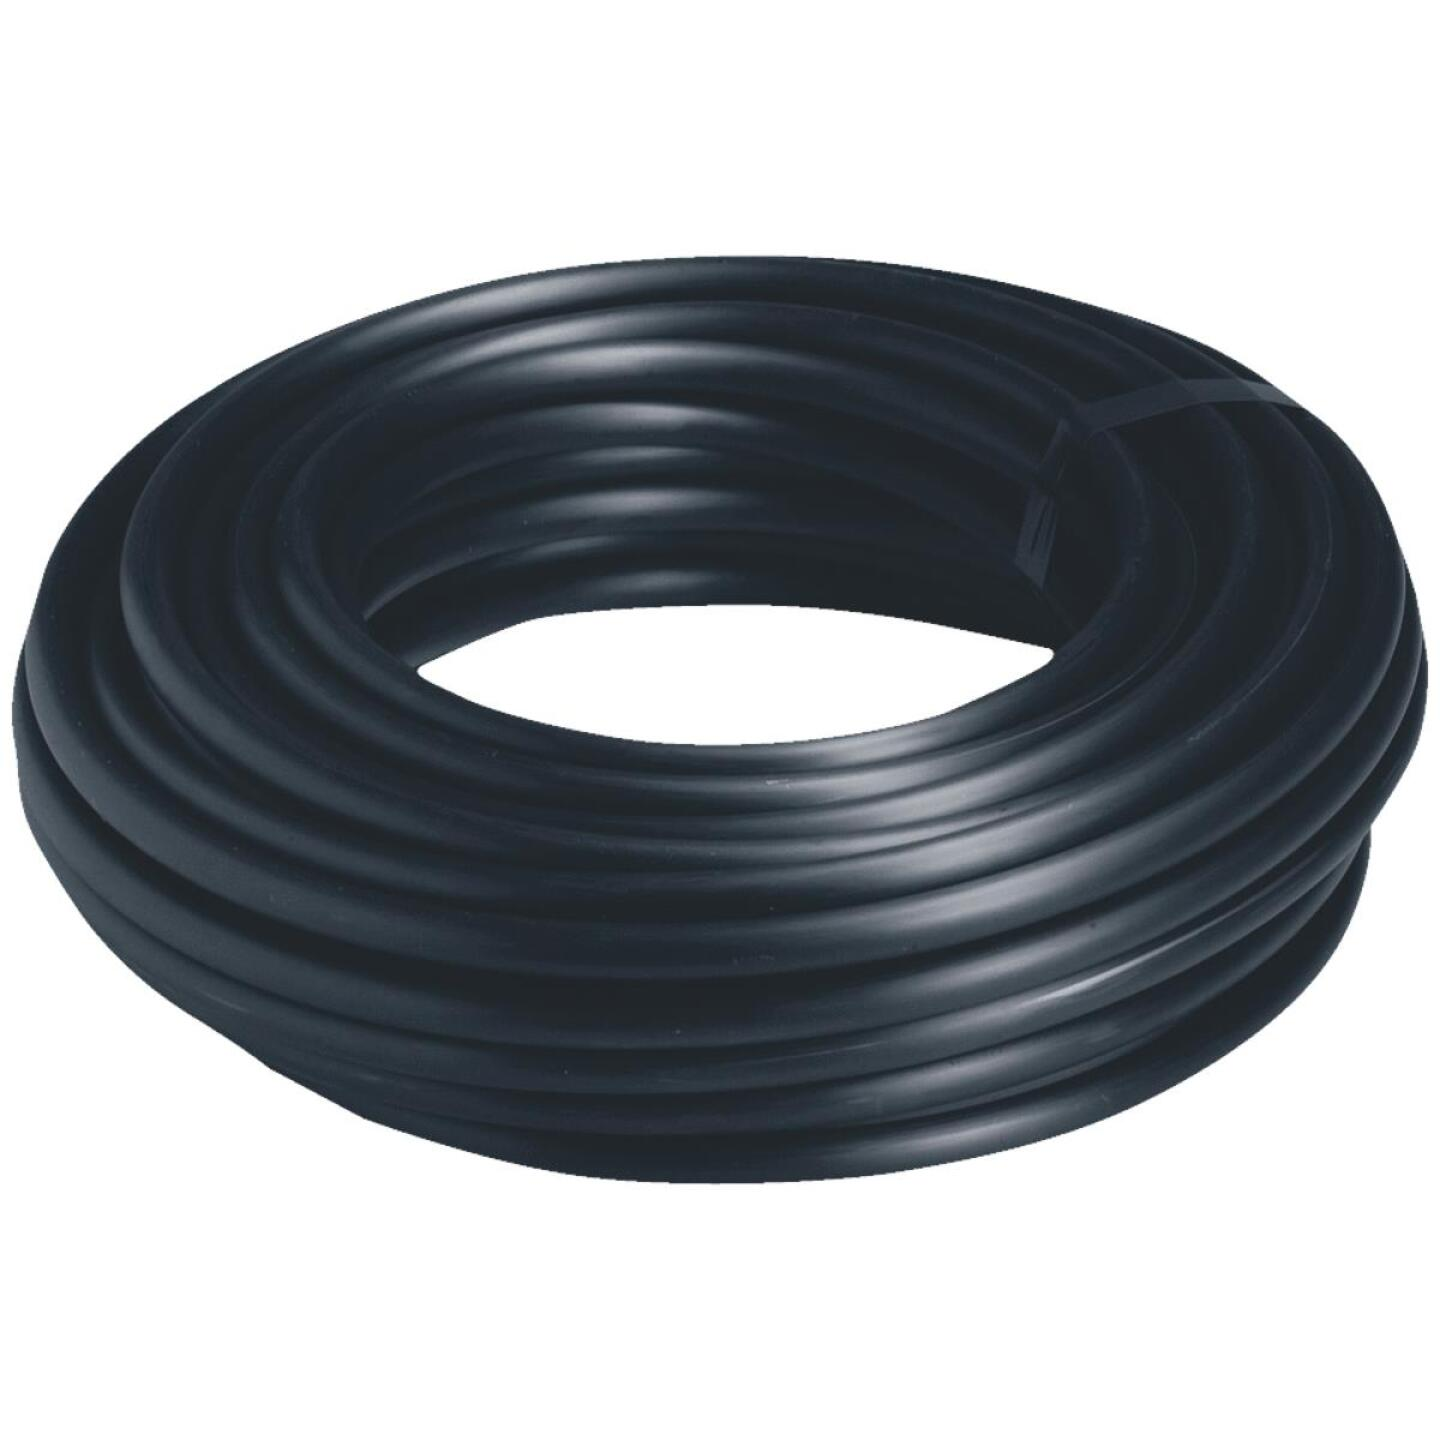 Orbit 50 Ft. L. x 1/2 In. Dia. Polyethylene Riser Flex Pipe Tubing Image 1